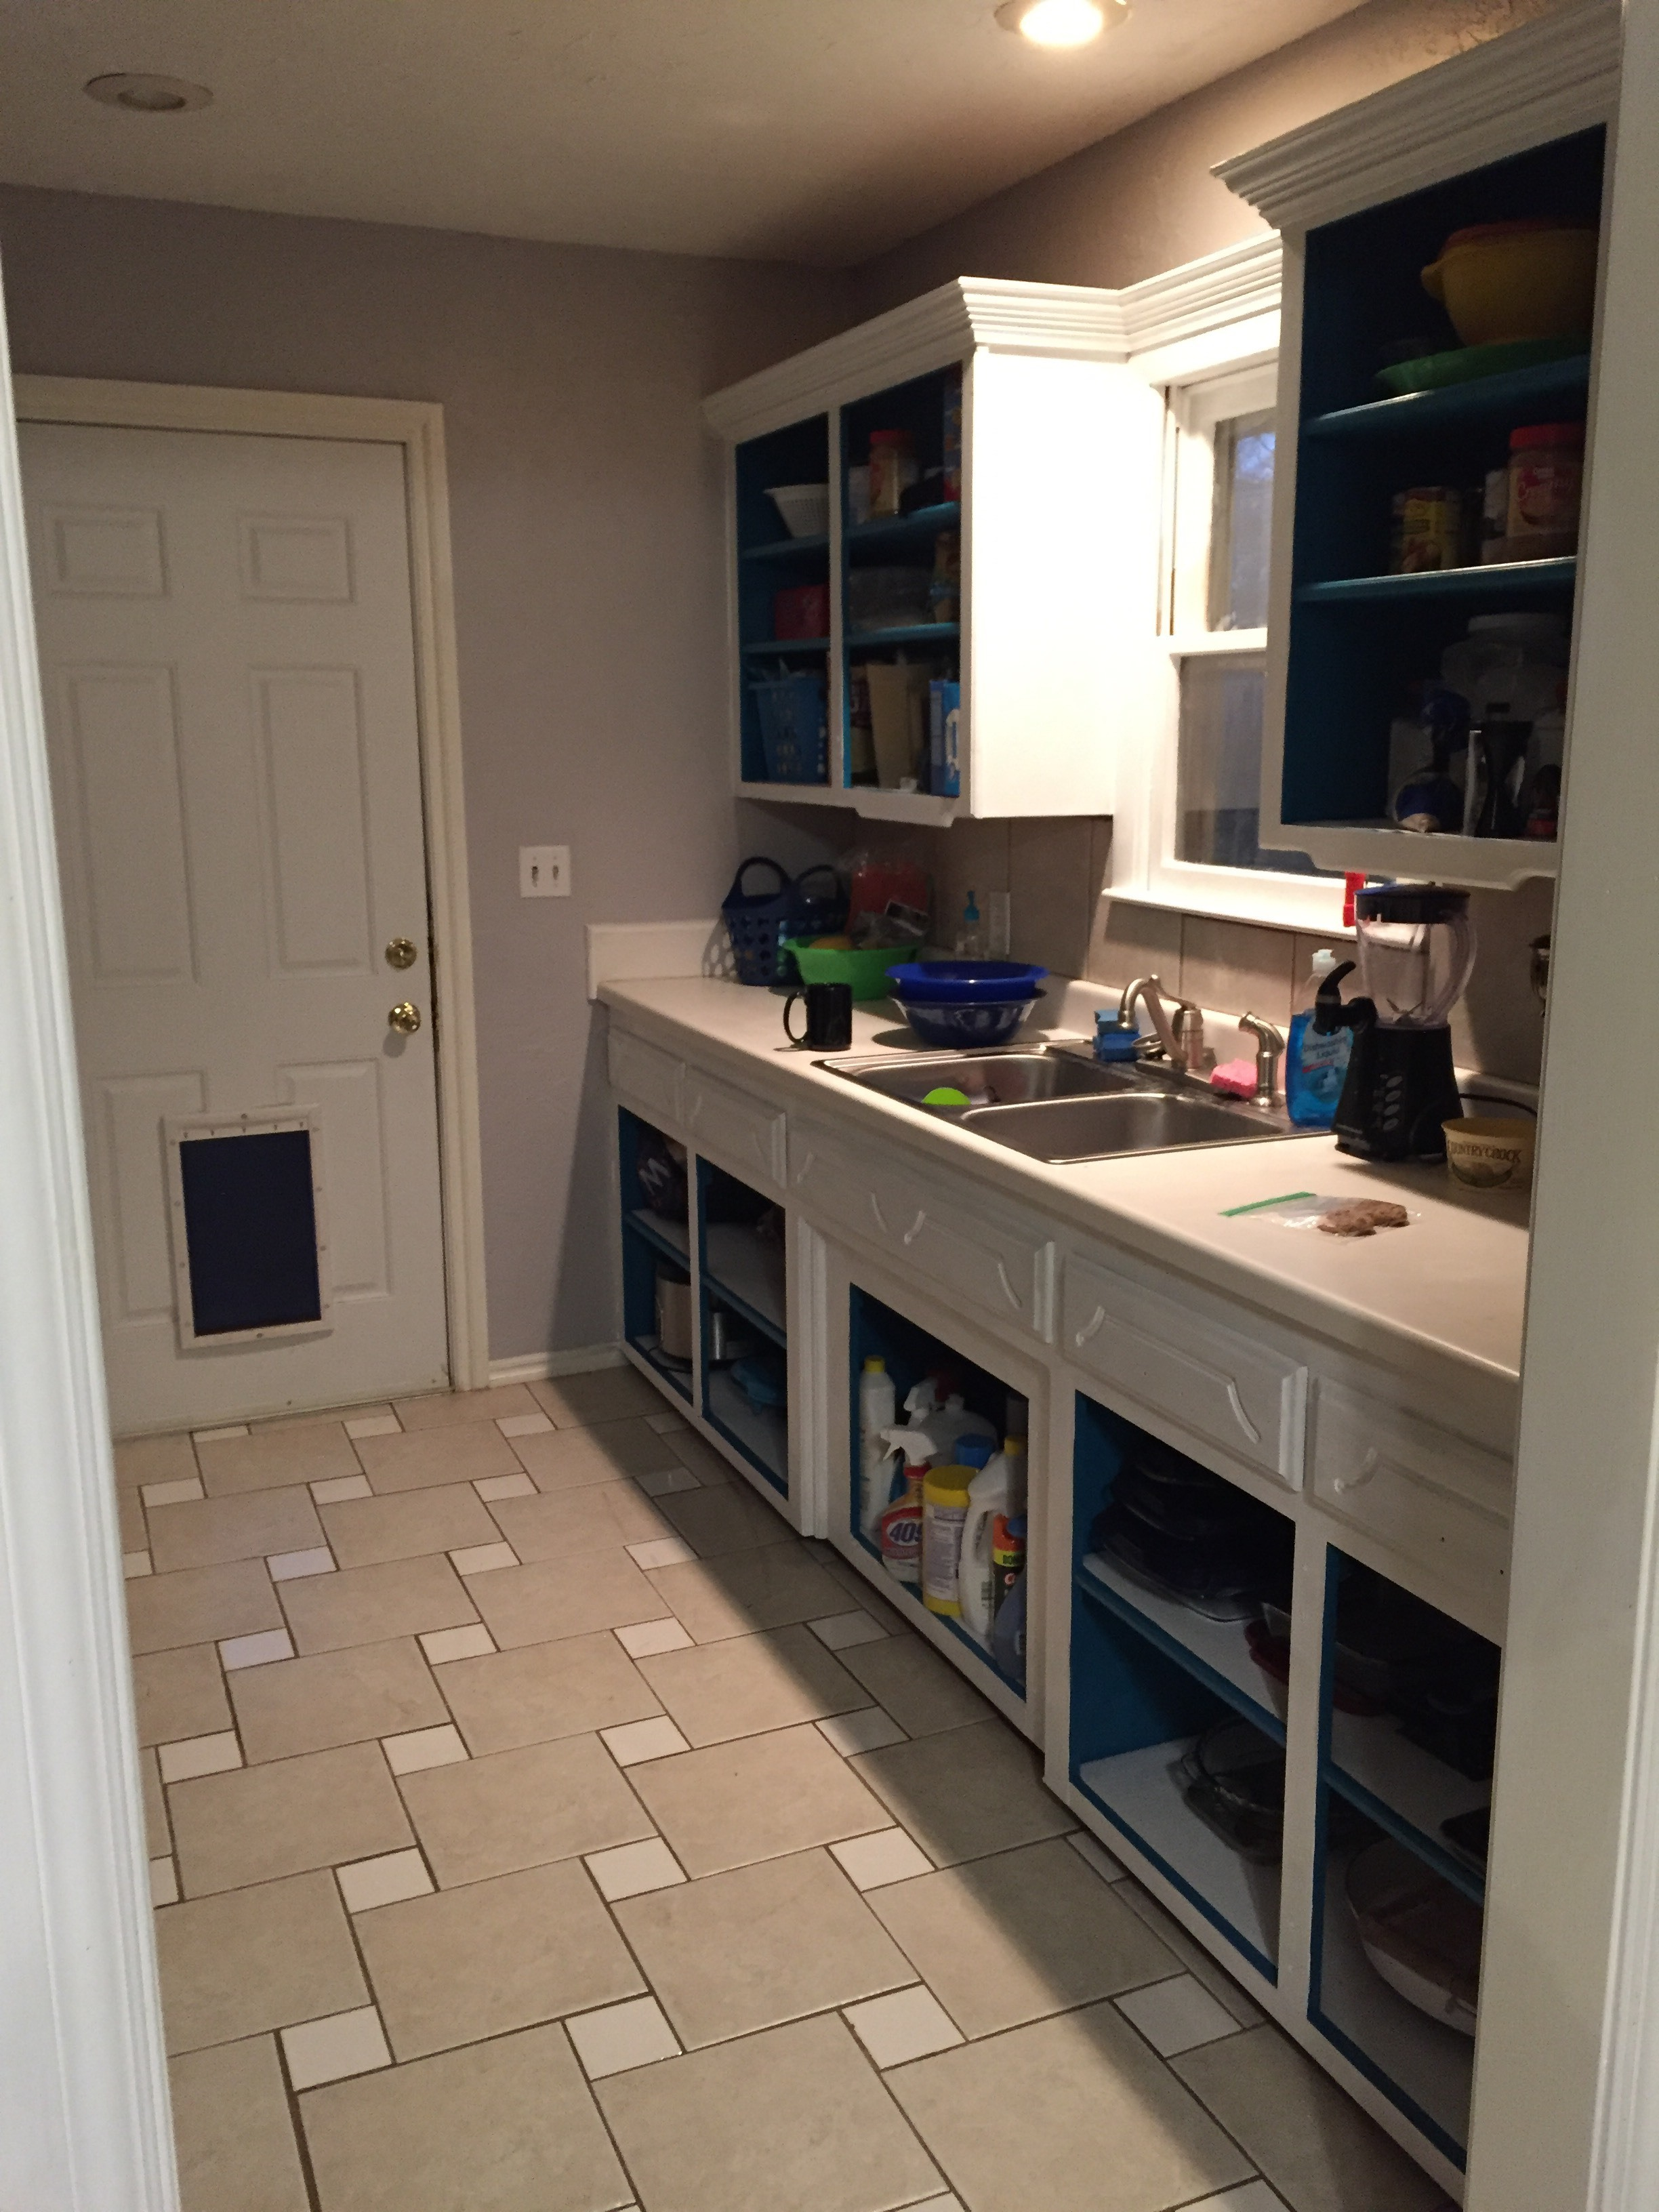 The other side of the kitchen